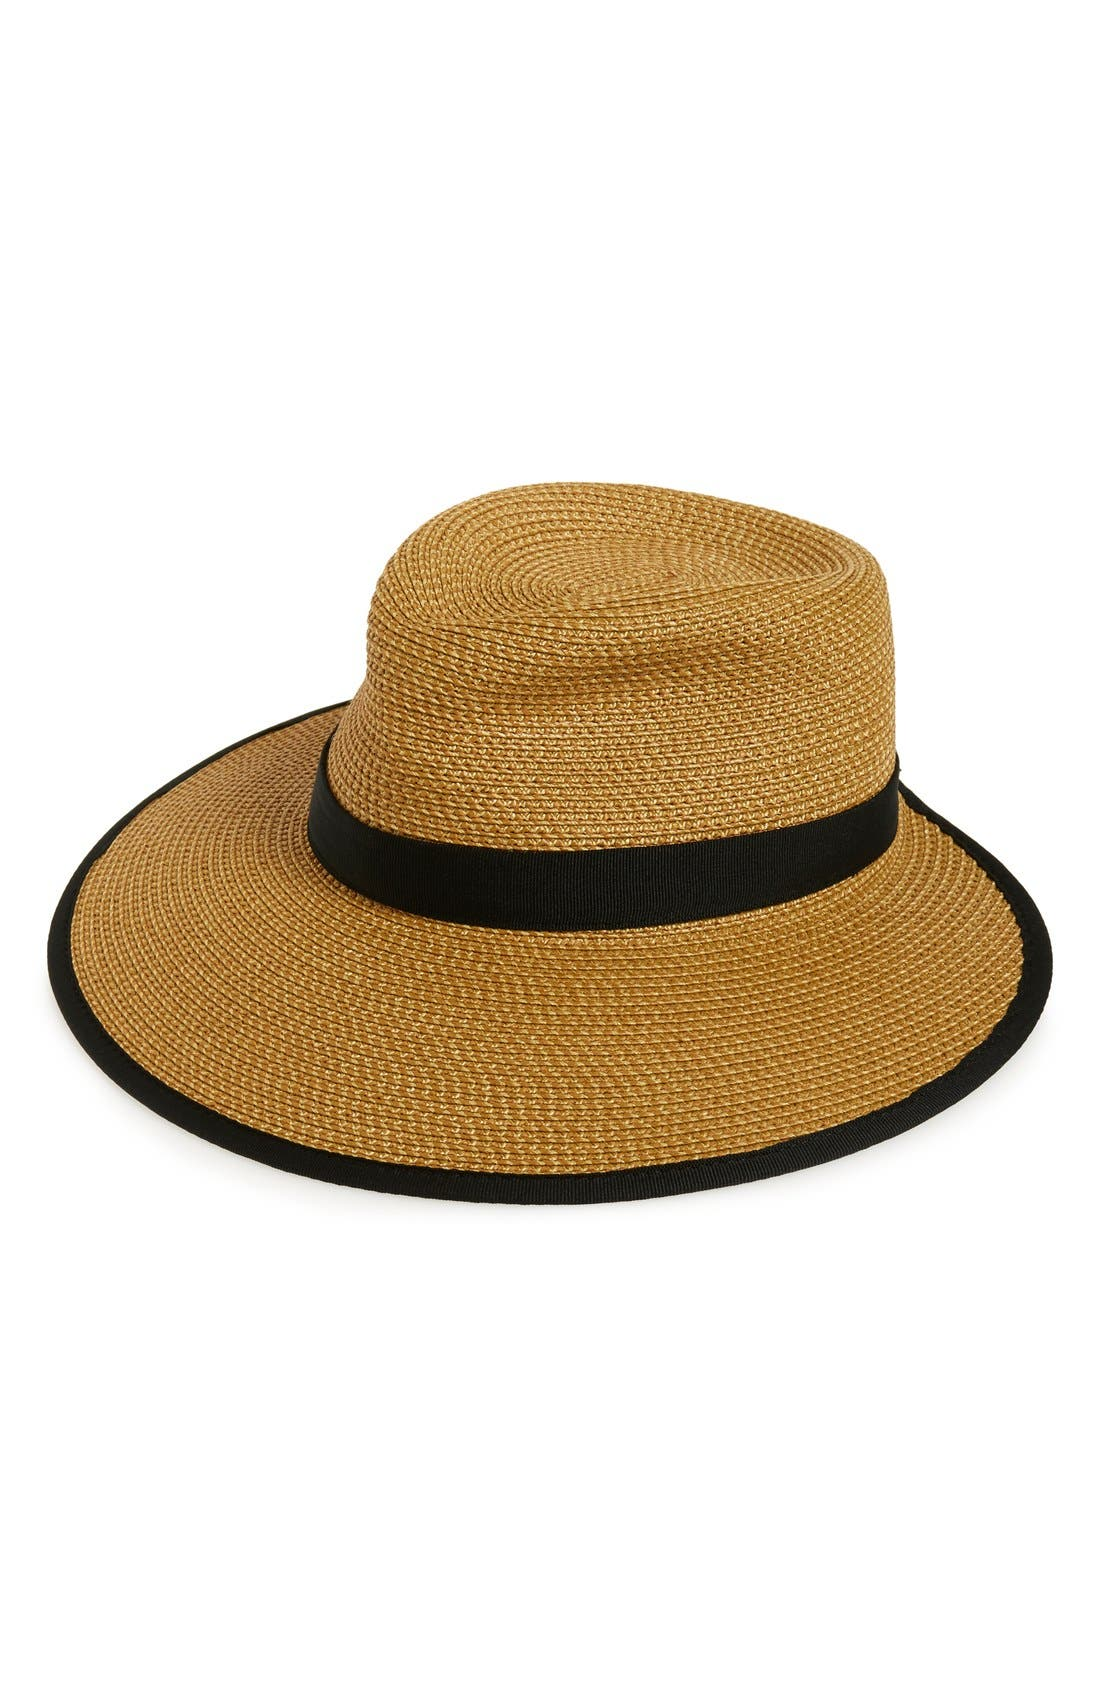 ERIC JAVITS 'Sun Crest' Packable Hybrid Fedora Visor, Main, color, NATURAL/ BLACK